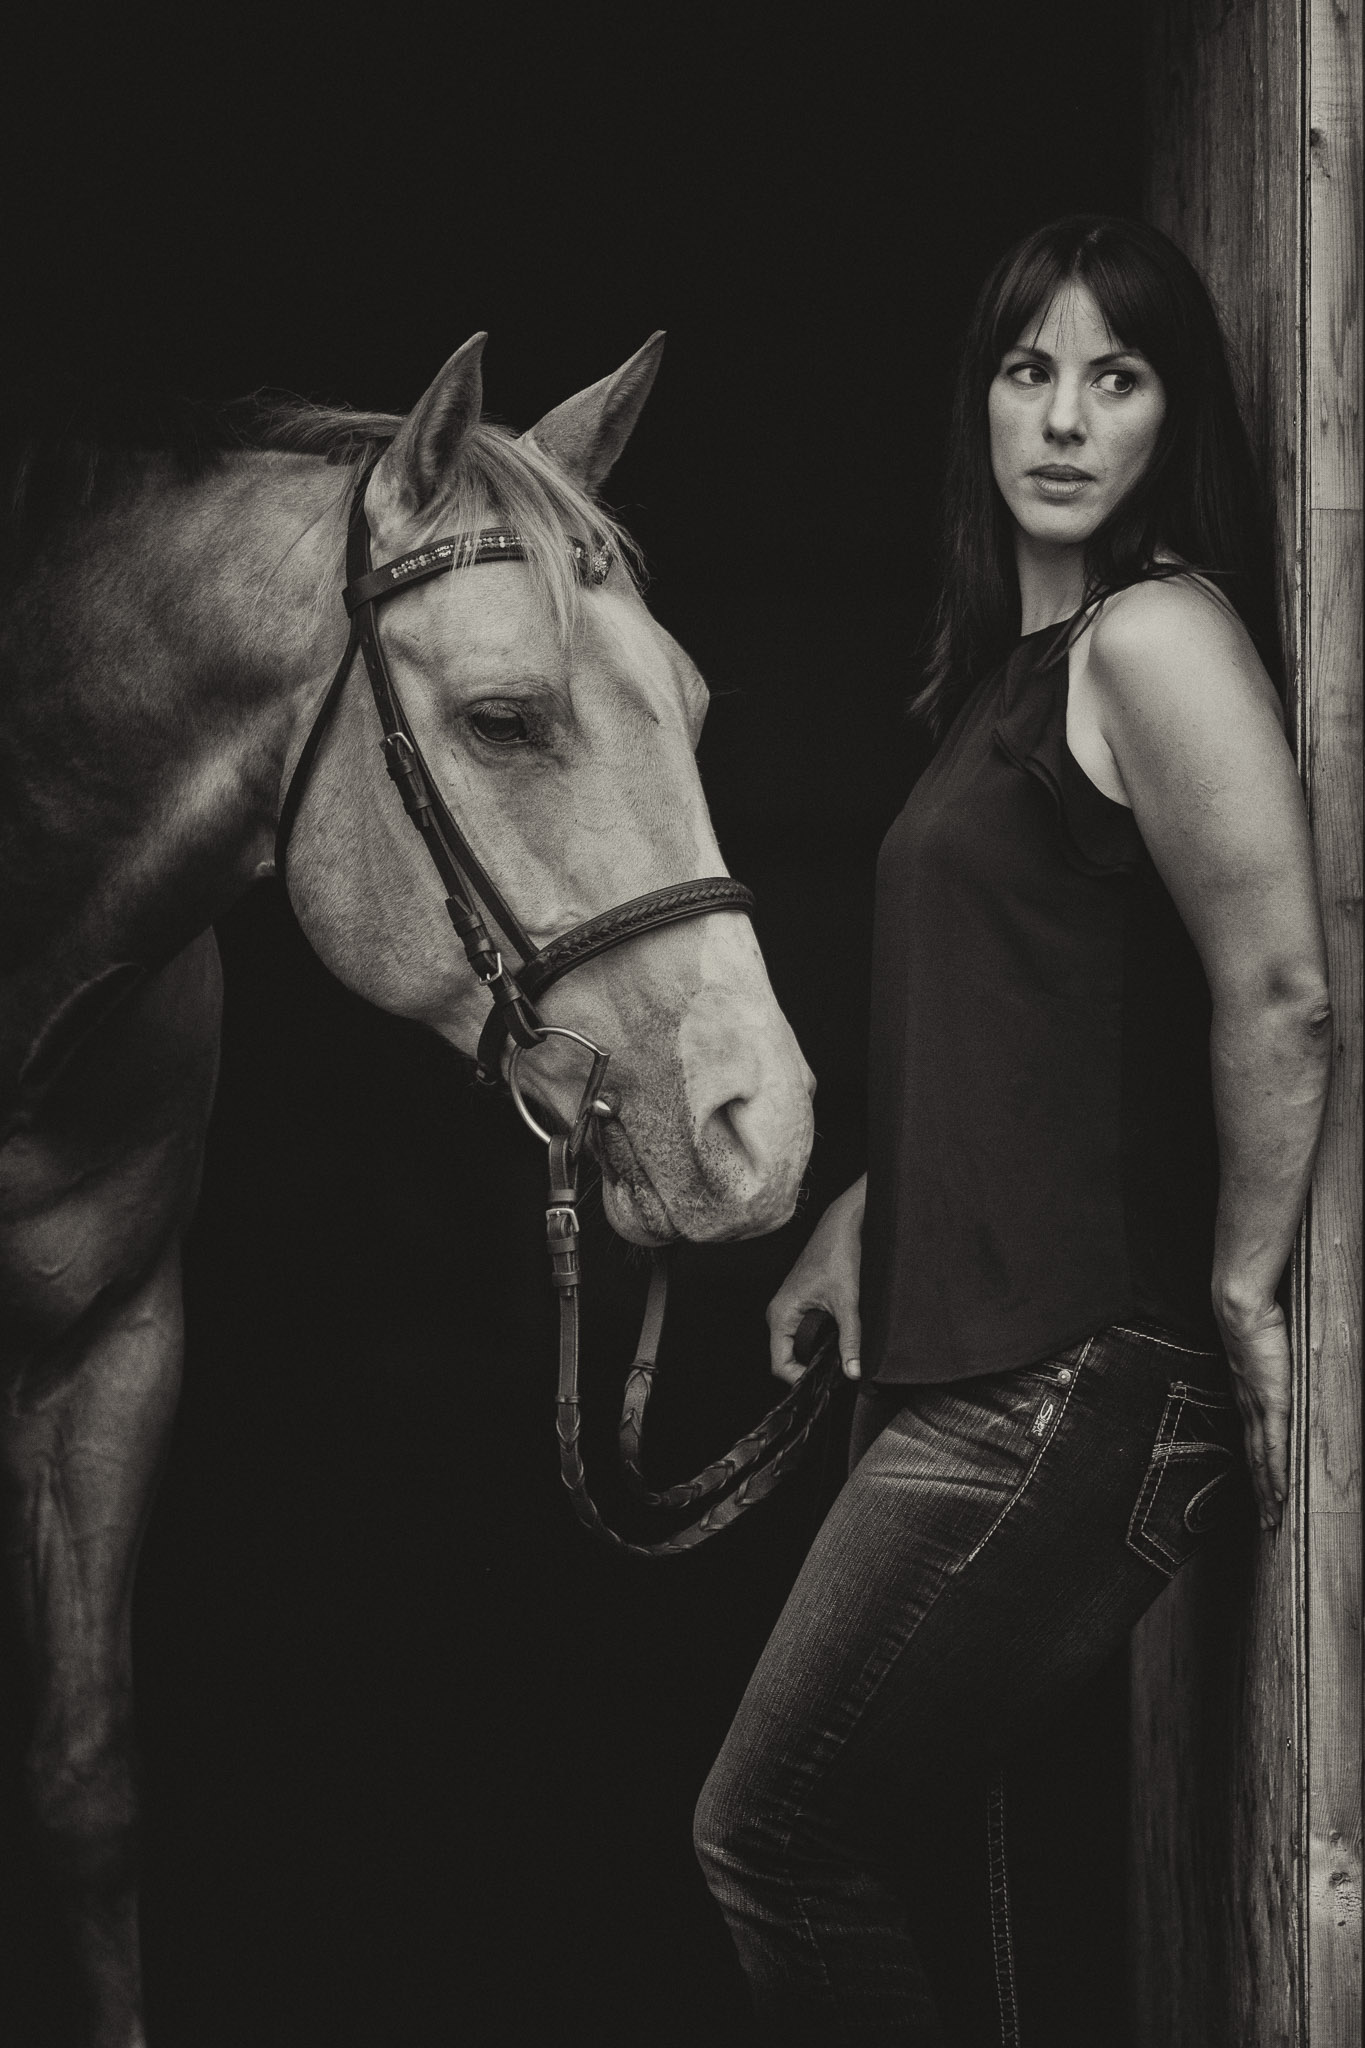 Human and horse model